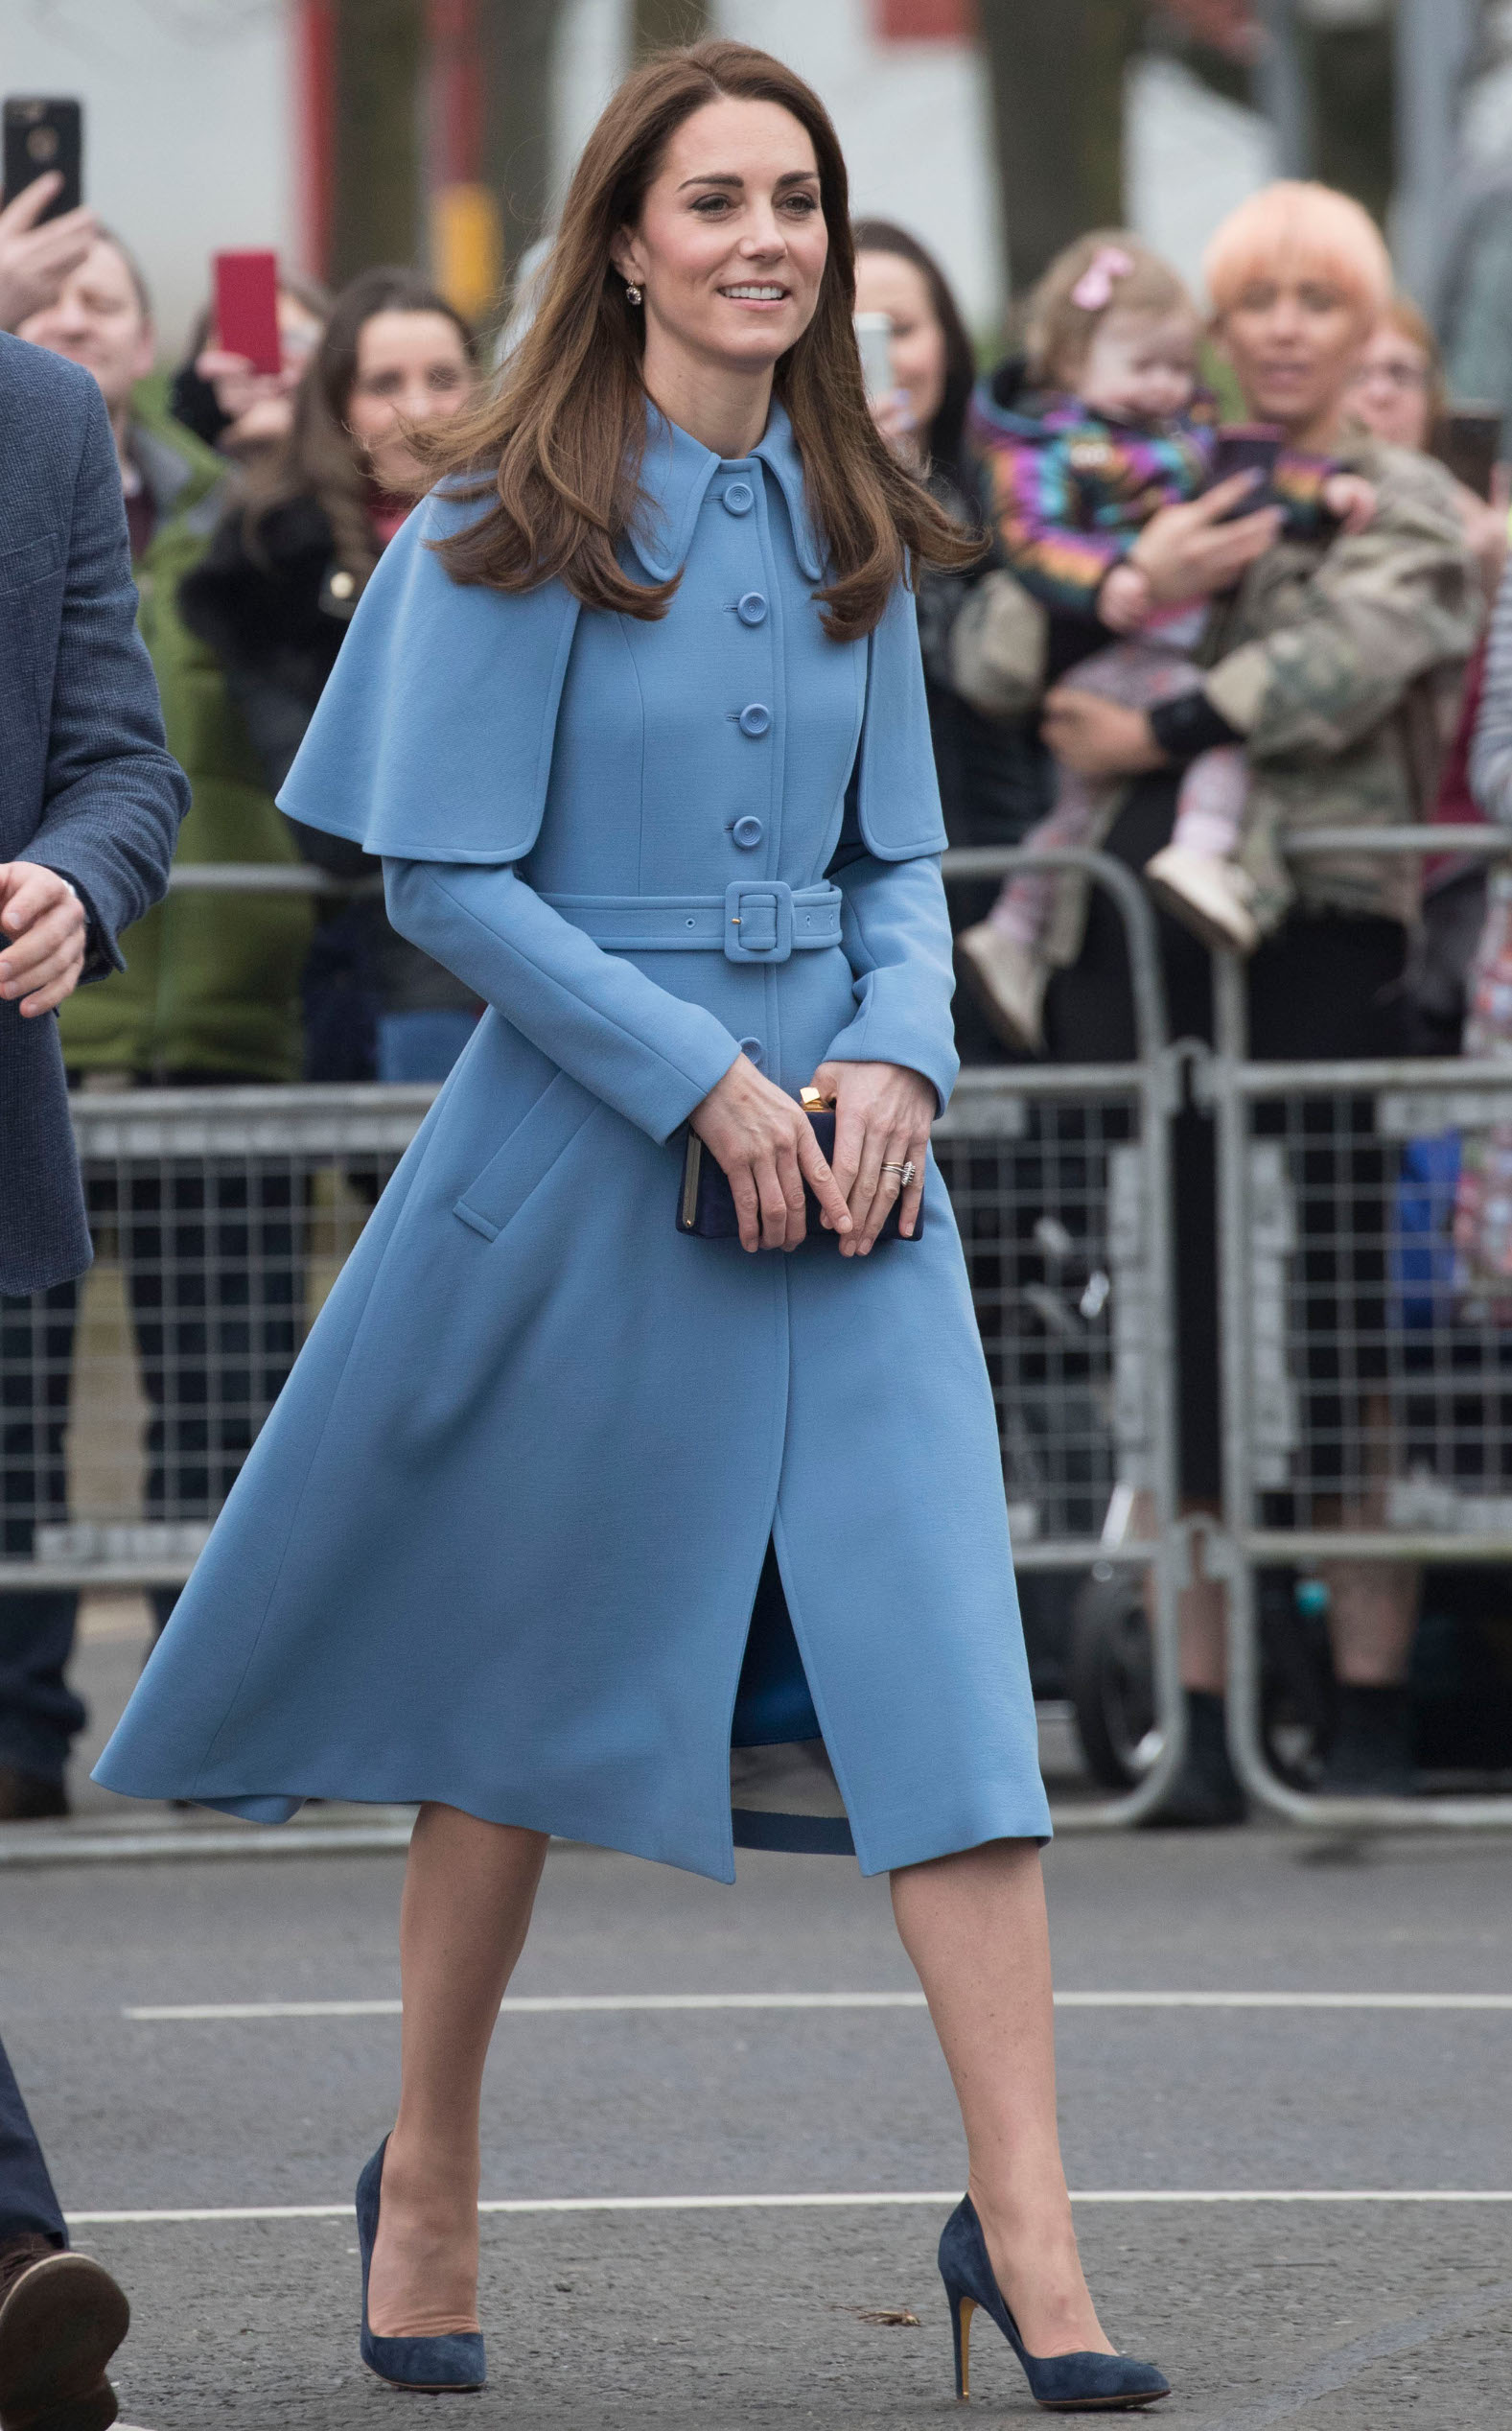 BALLYMENA, NORTHERN IRELAND - FEBRUARY 28: Catherine, Duchess of Cambridge engages in a walkabout in Ballymena town centre on February 28, 2019 in Ballymena, Northern Ireland. Prince William last visited Belfast in October 2017 without his wife, Catherine, Duchess of Cambridge, who was then pregnant with the couple's third child.  This time they concentrate on the young people of Northern Ireland. Their engagements include a visit to Windsor Park Stadium, home of the Irish Football Association, activities at the Roscor Youth Village in Fermanagh, a party at the Belfast Empire Hall, Cinemagic, a charity that uses film, television and digital technologies to inspire young people and finally dropping in on a SureStart early years programme. (Photo by Stephen Lock - Pool/Getty Images)